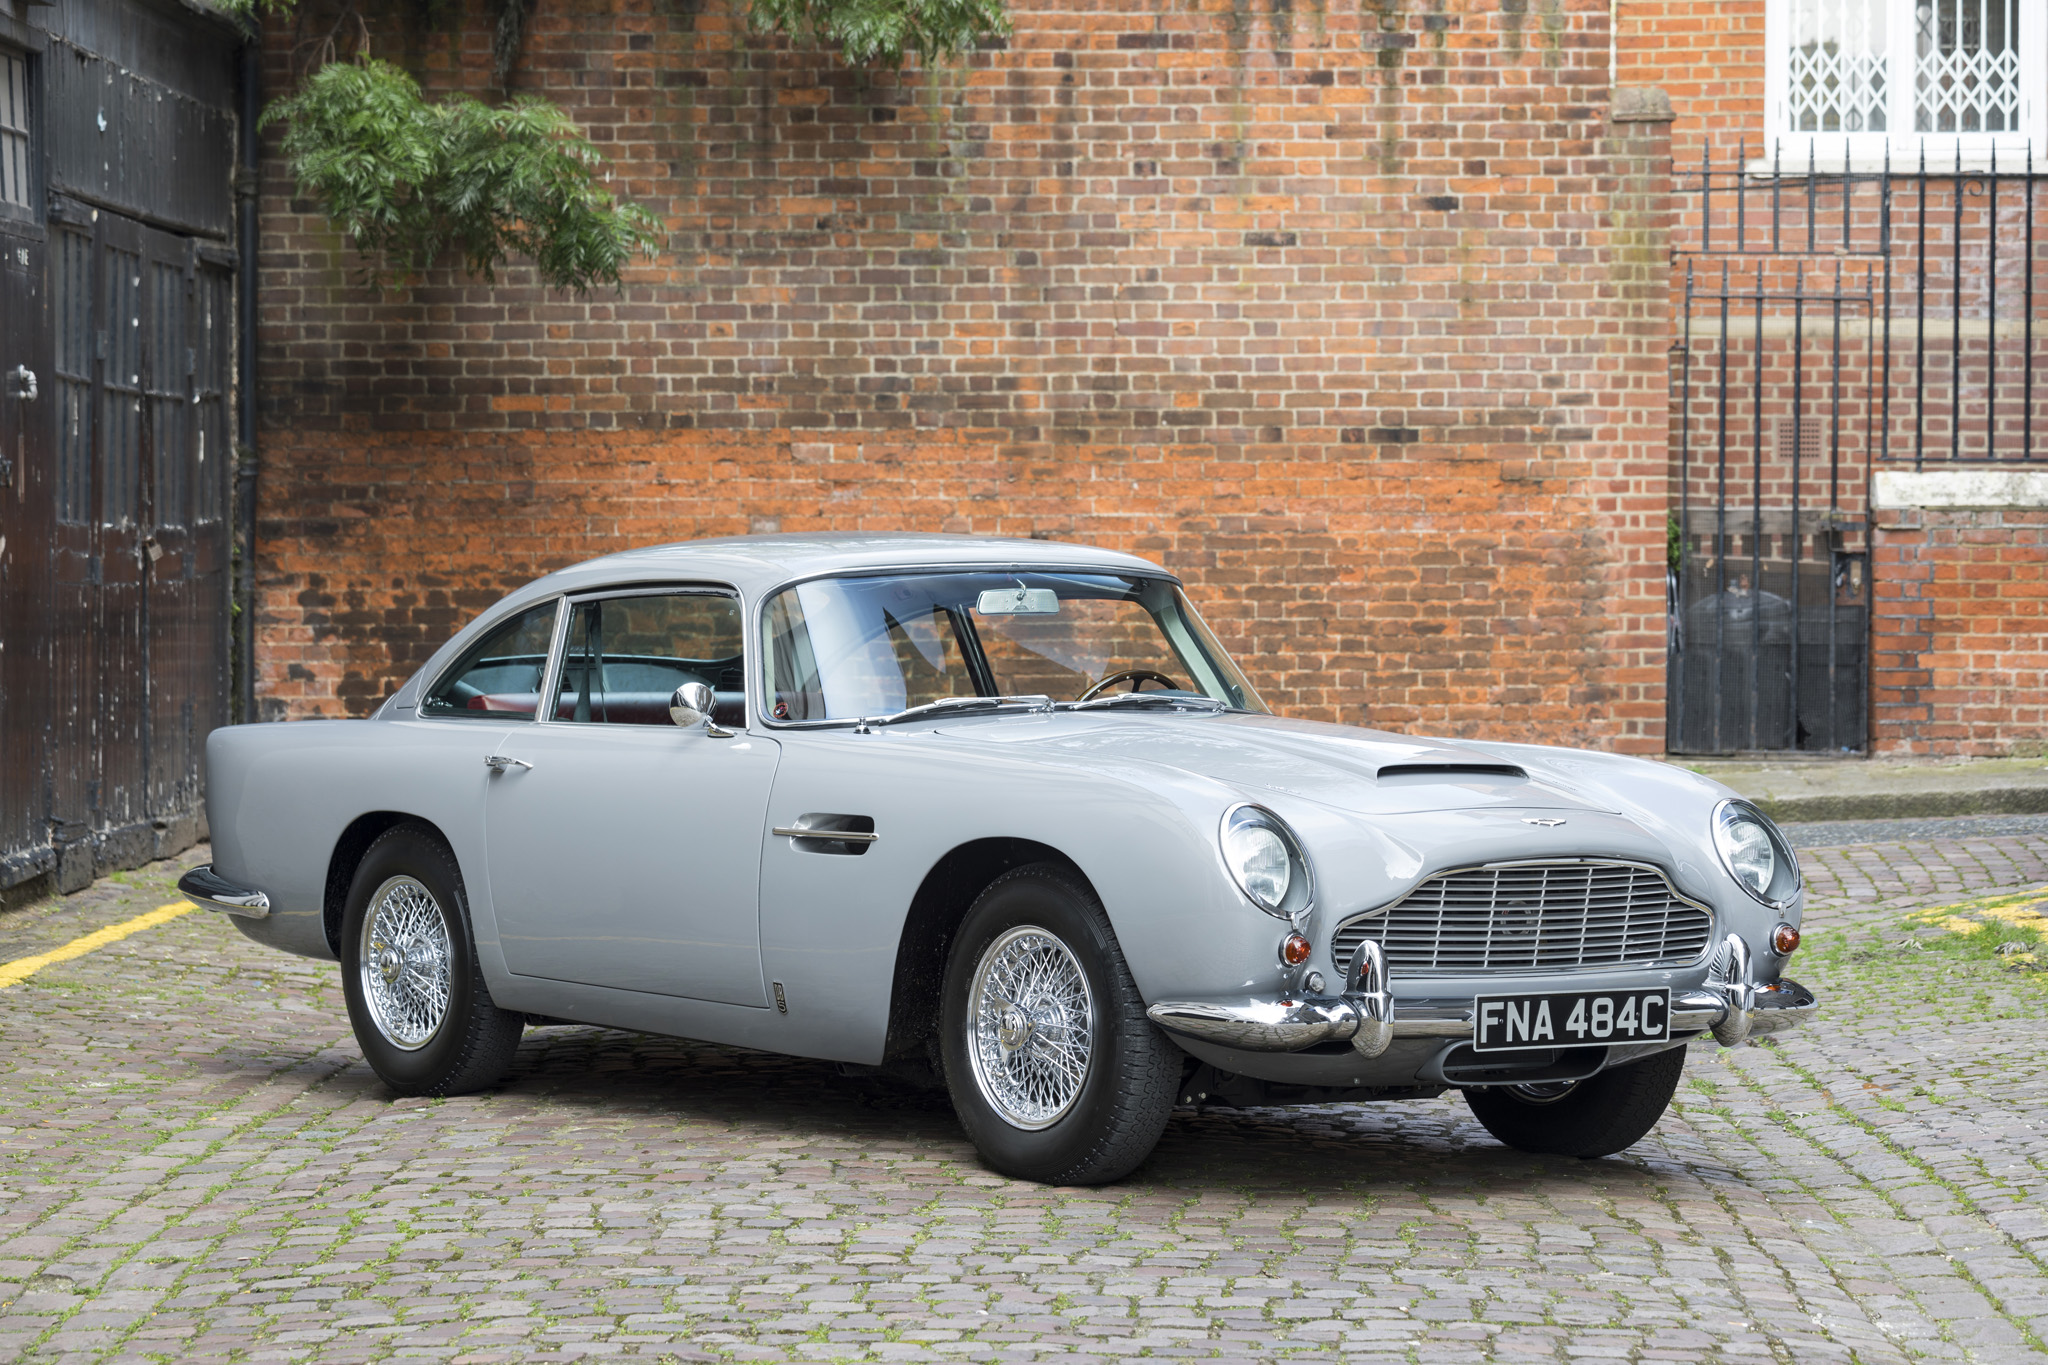 1965 aston martin db5 cars for sale fiskens. Black Bedroom Furniture Sets. Home Design Ideas